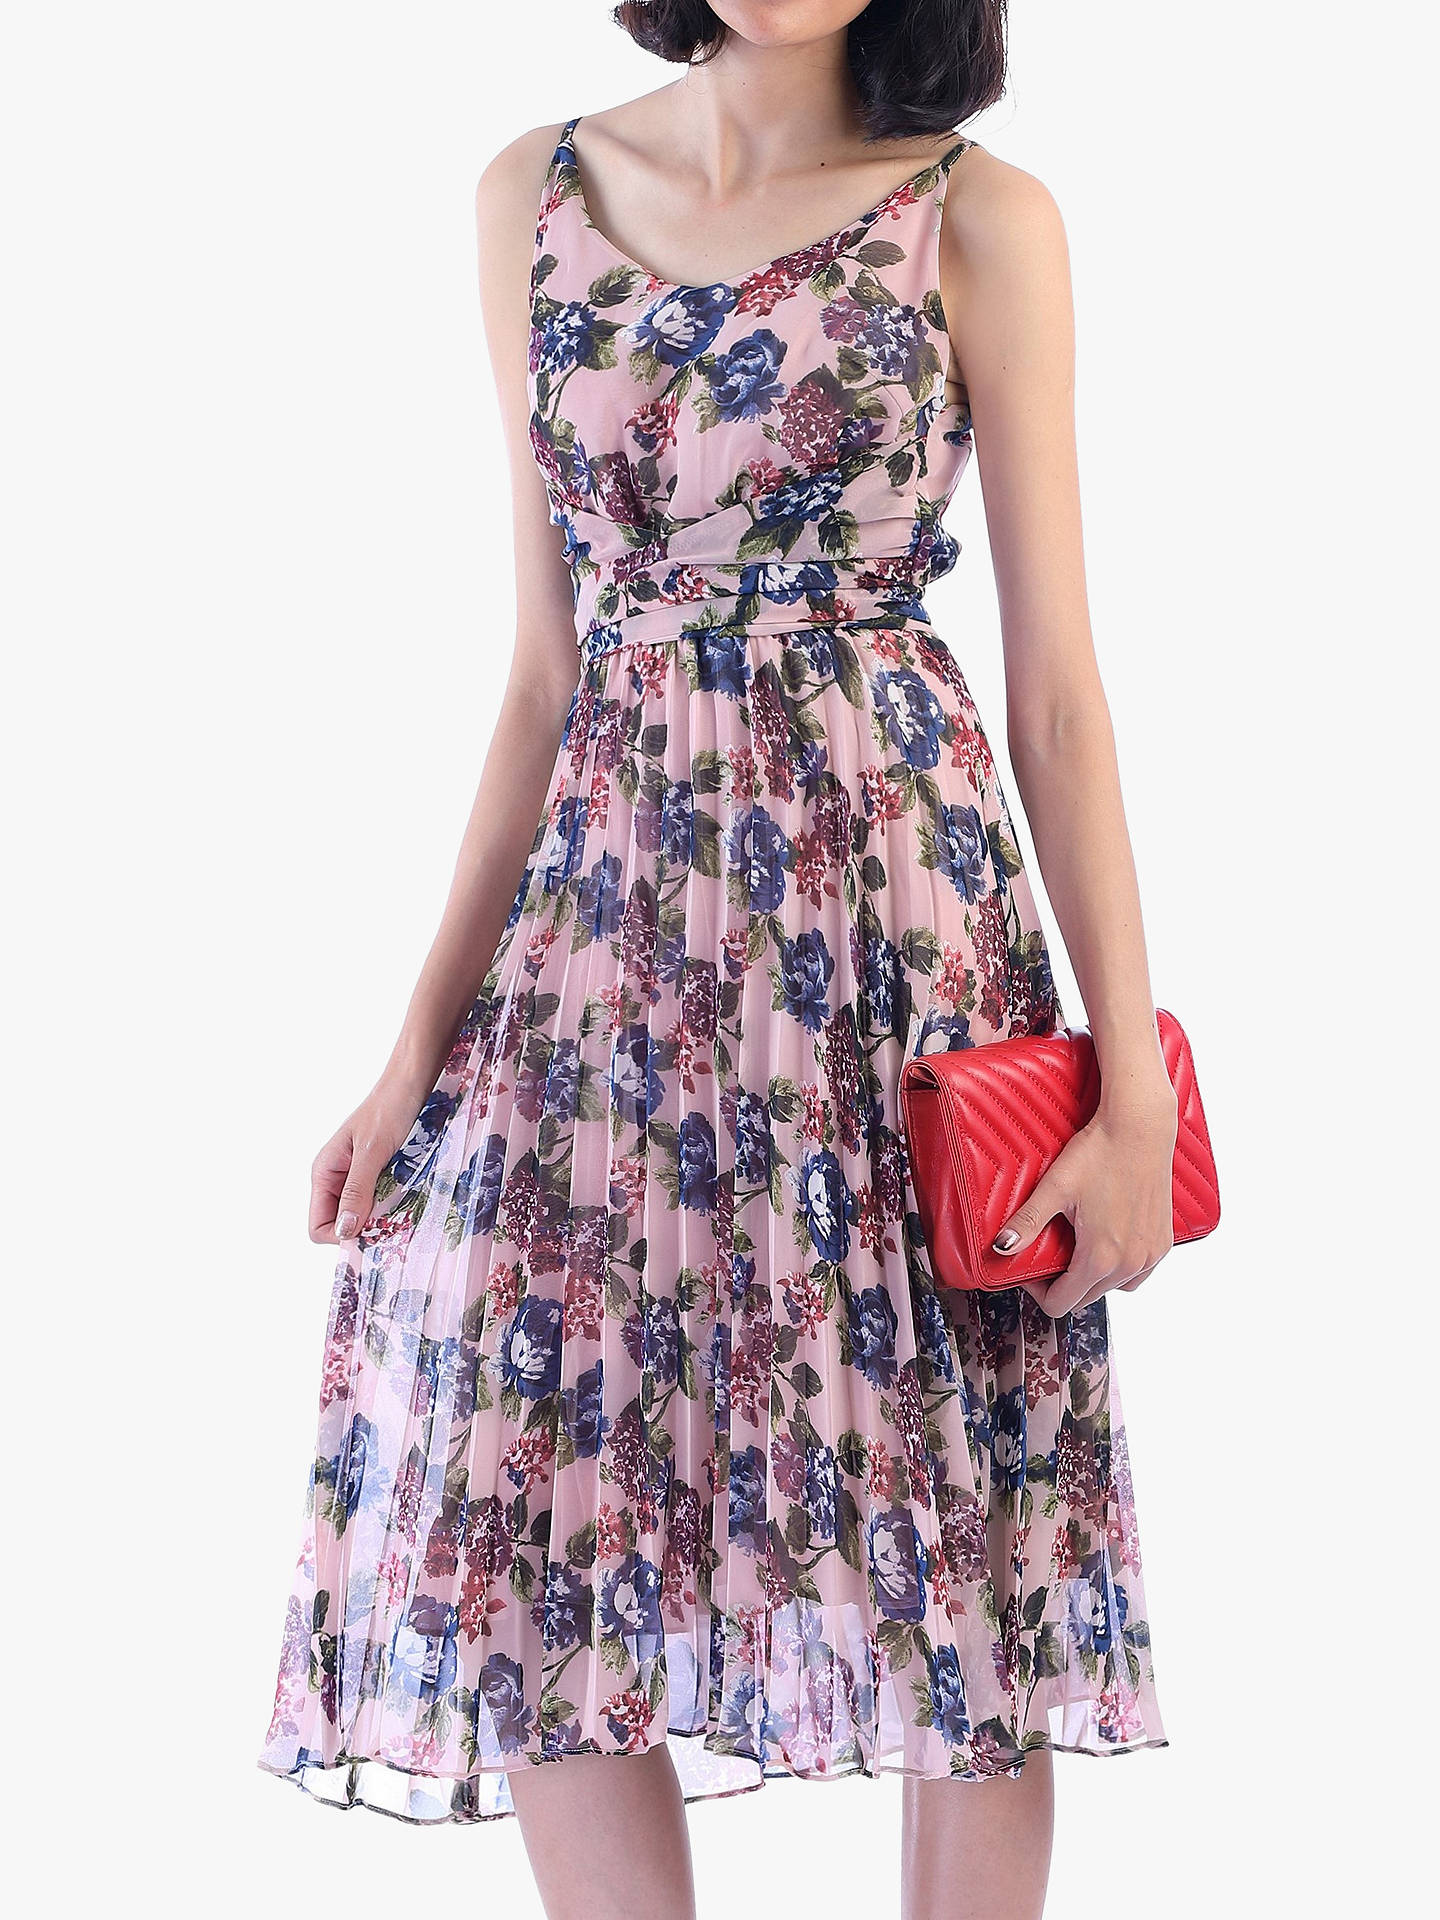 619b7c01a470 Buy Jolie Moi Strappy Floral Pleated Dress, Pink/Multi, 8 Online at  johnlewis ...